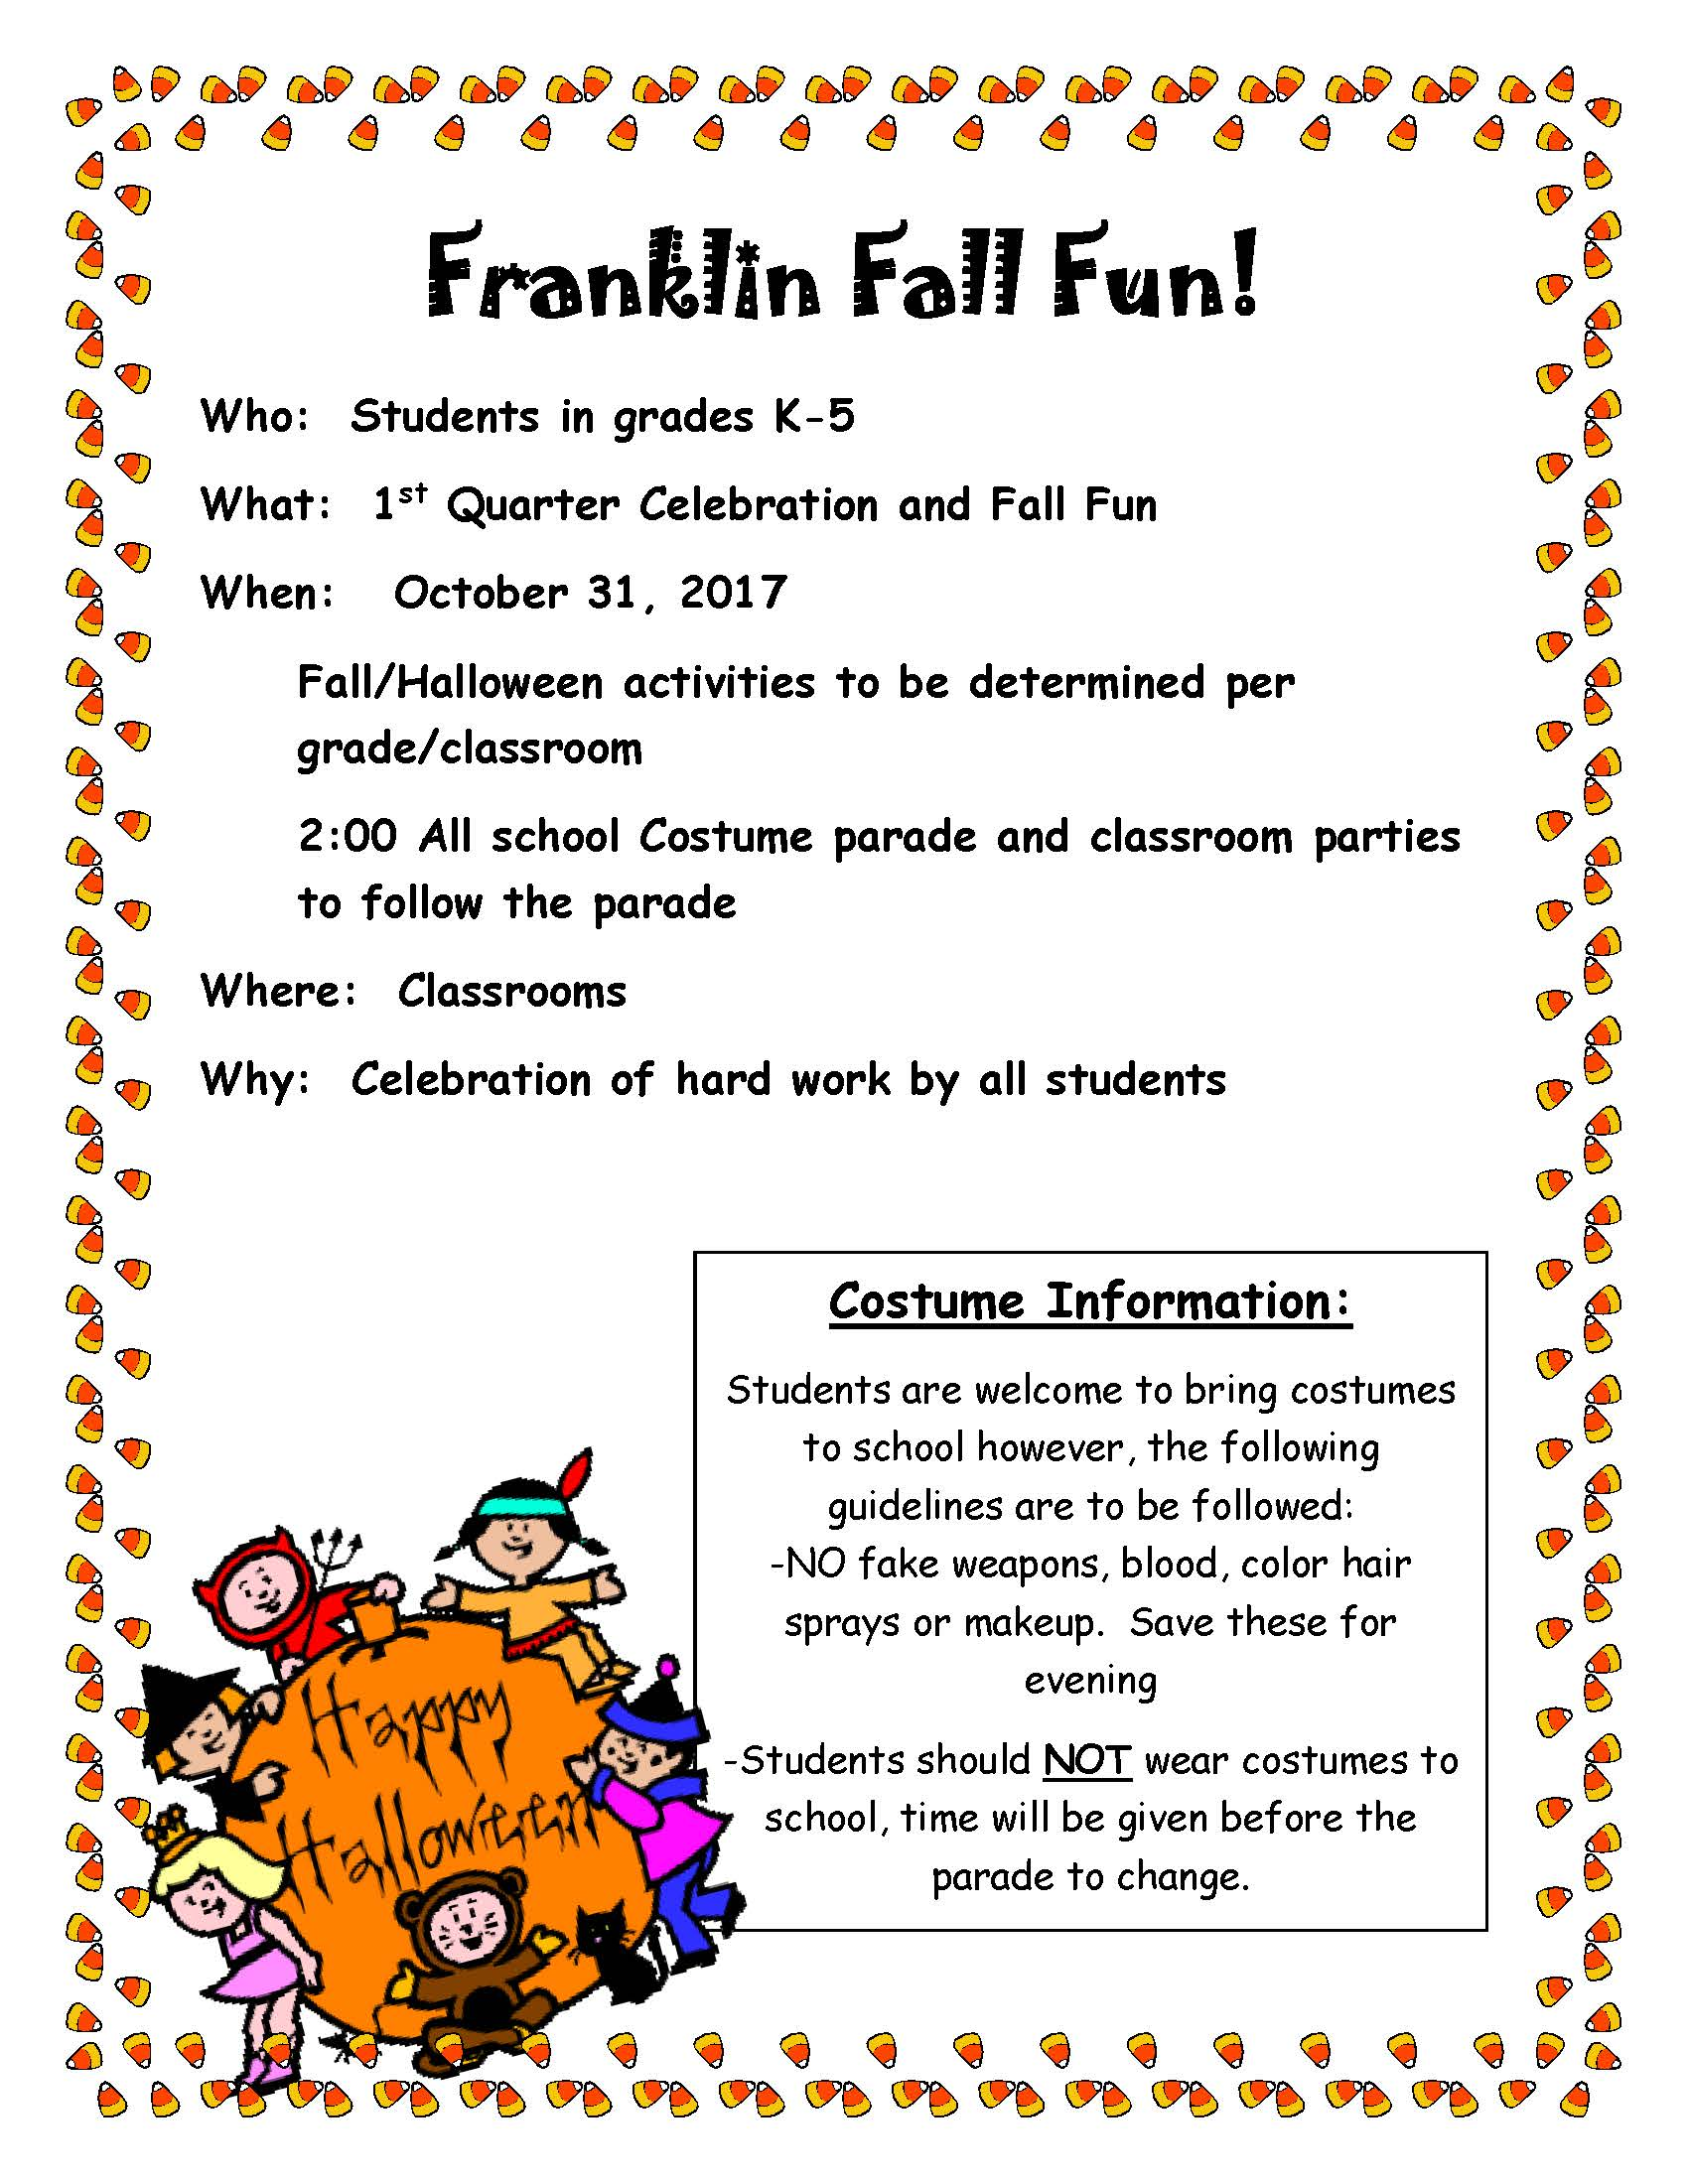 Franklin Elementary Fall Fun Flyer